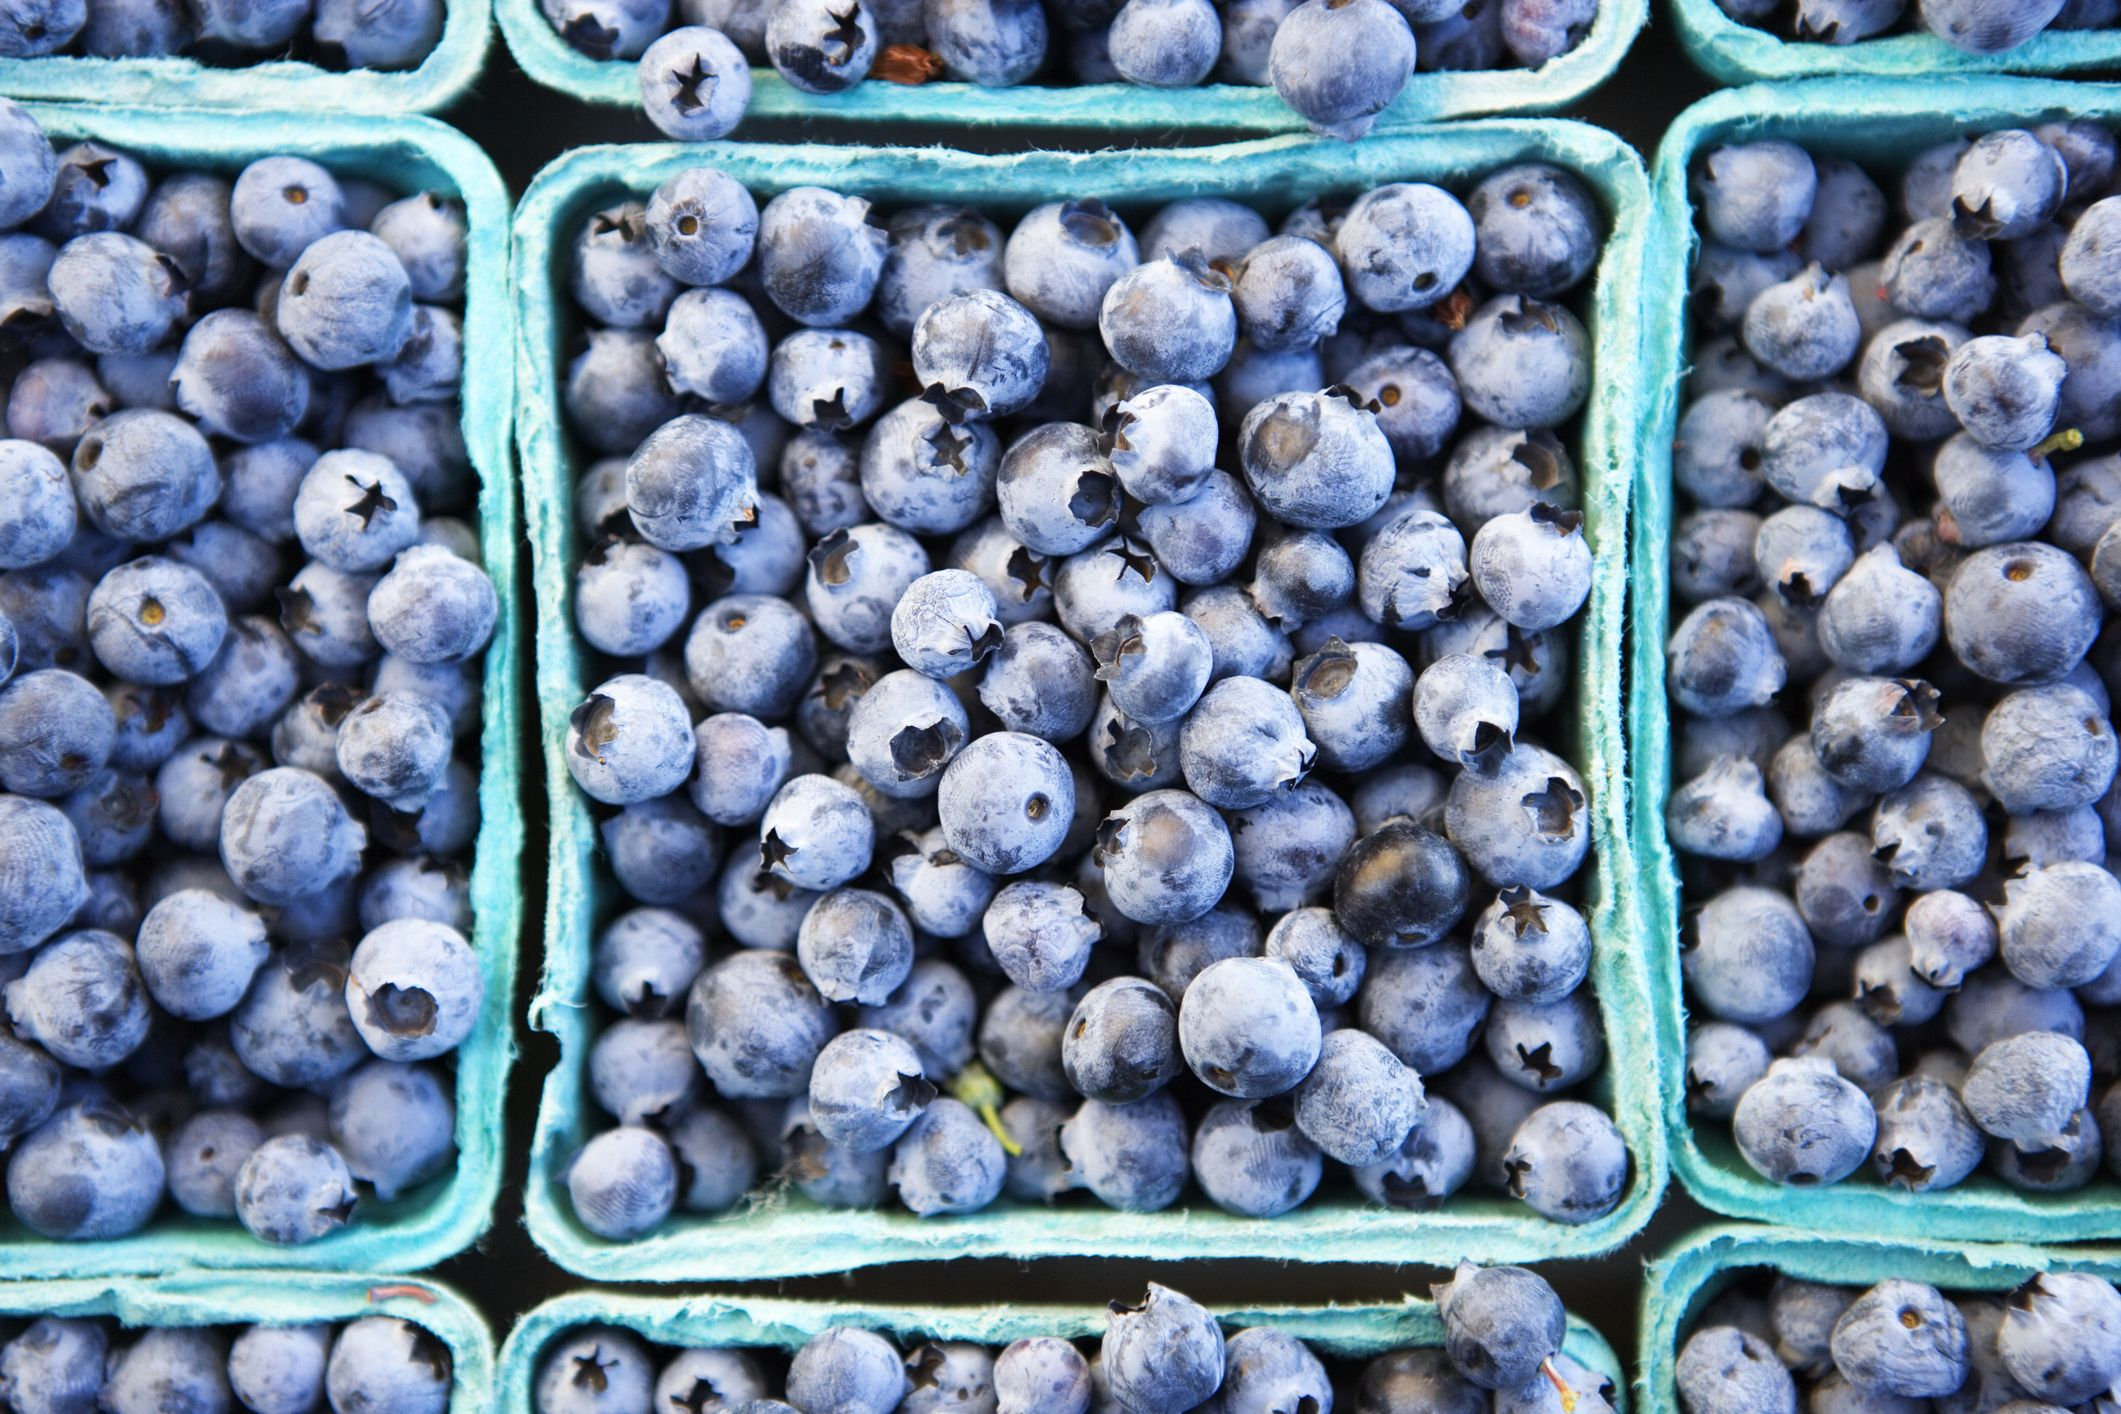 7 Unexpected Benefits of Blueberries You Probably Didn't Know About